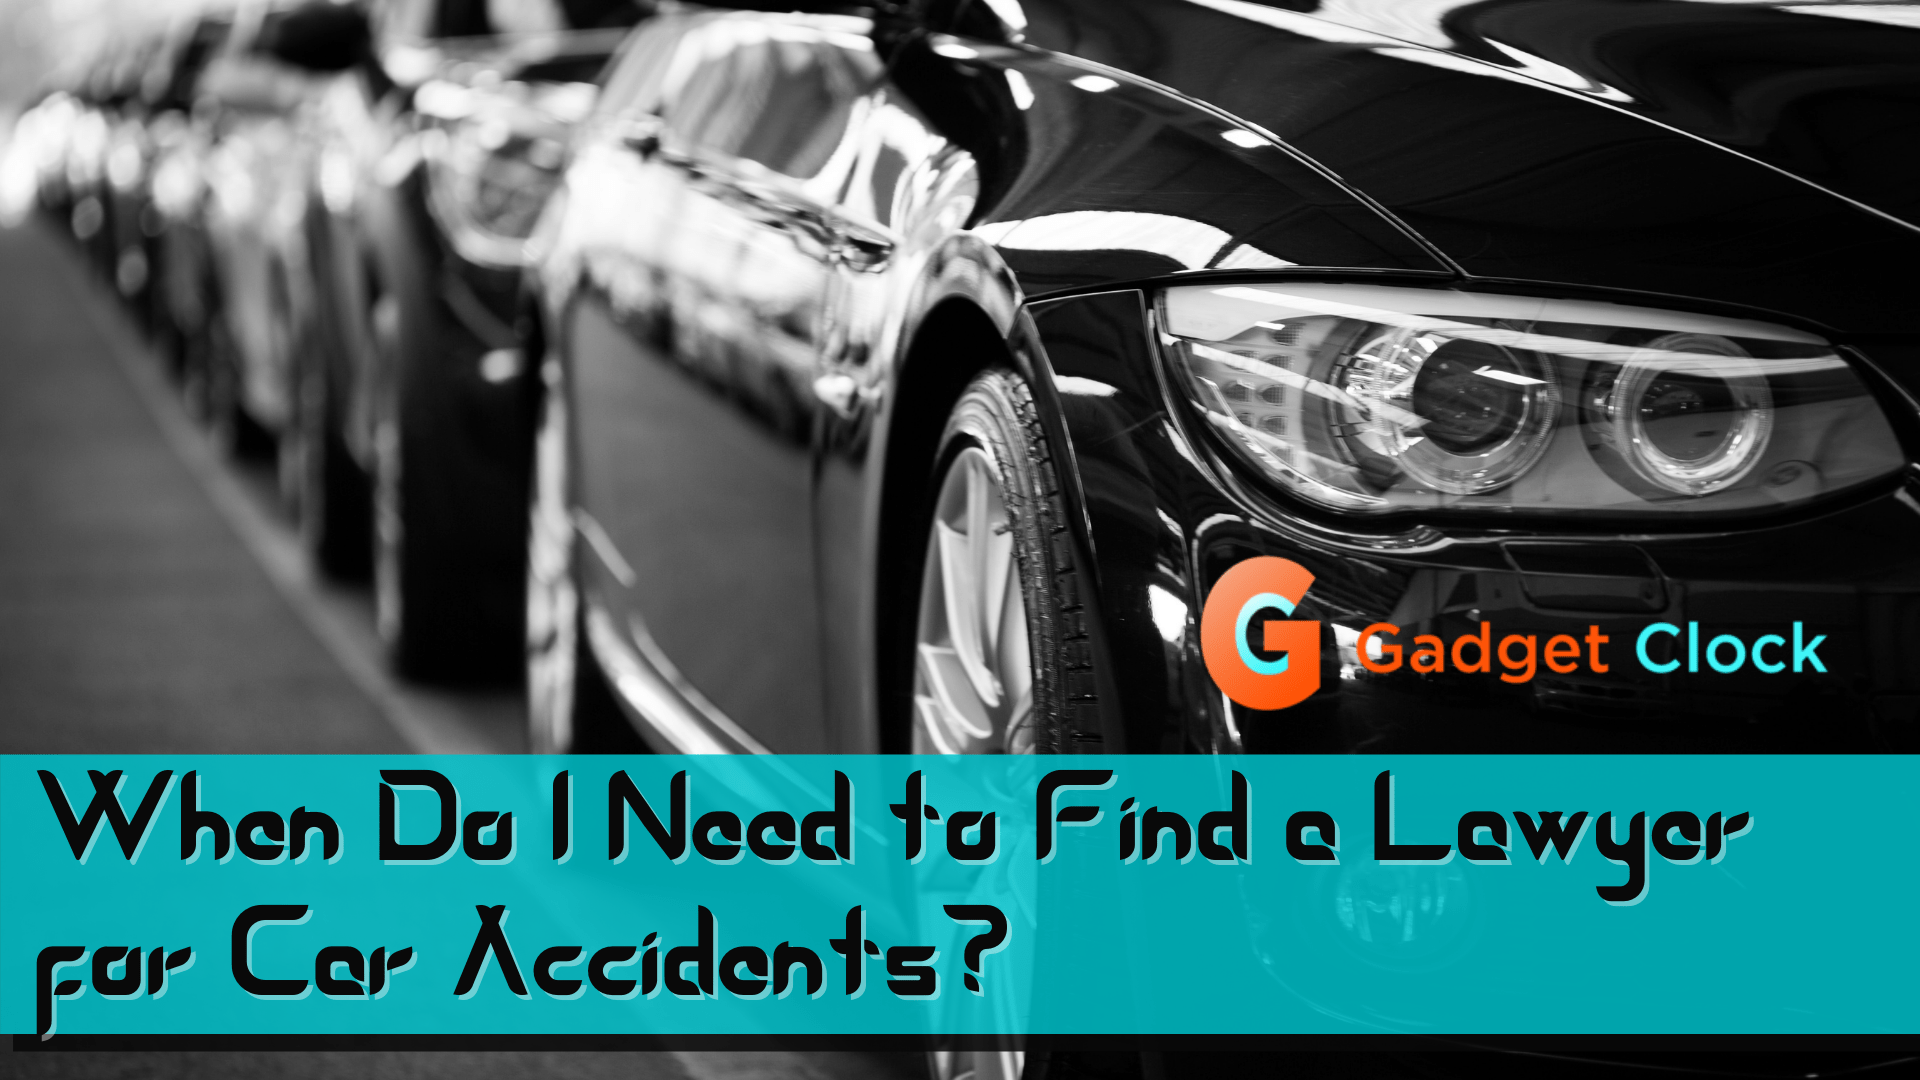 Car Accident Lawyer Jacksonville 2021: When Do I Need to Find a Lawyer for Car Accidents?